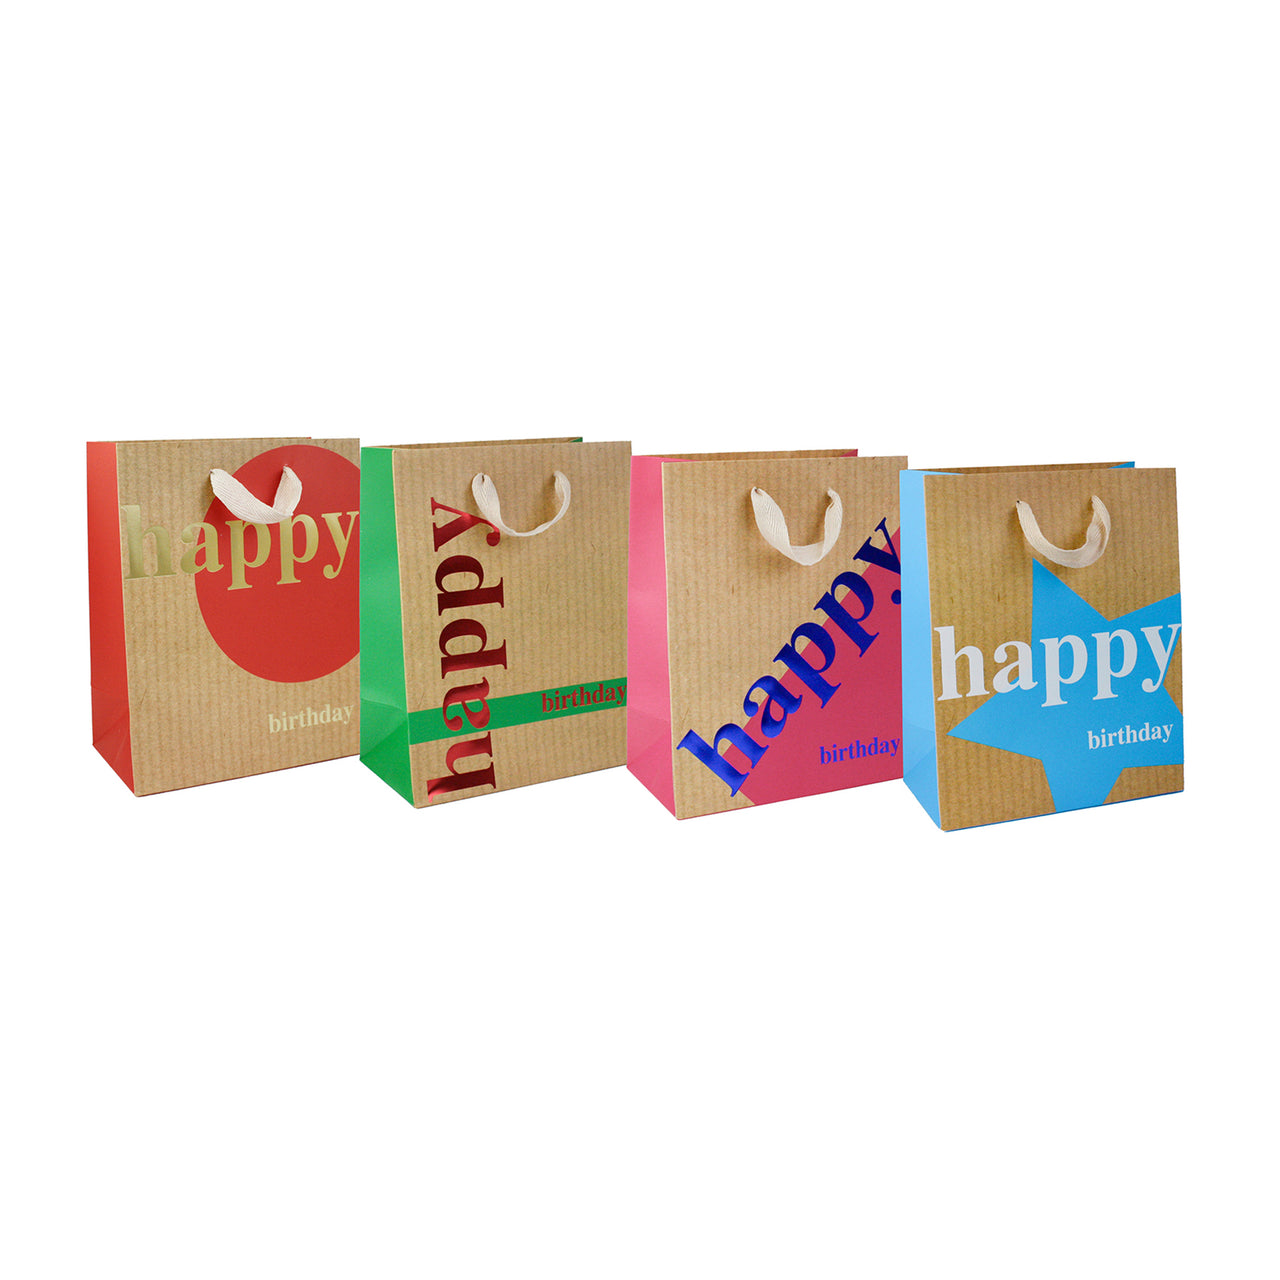 Brown Happy Birthday Gift Bag - Set of 4